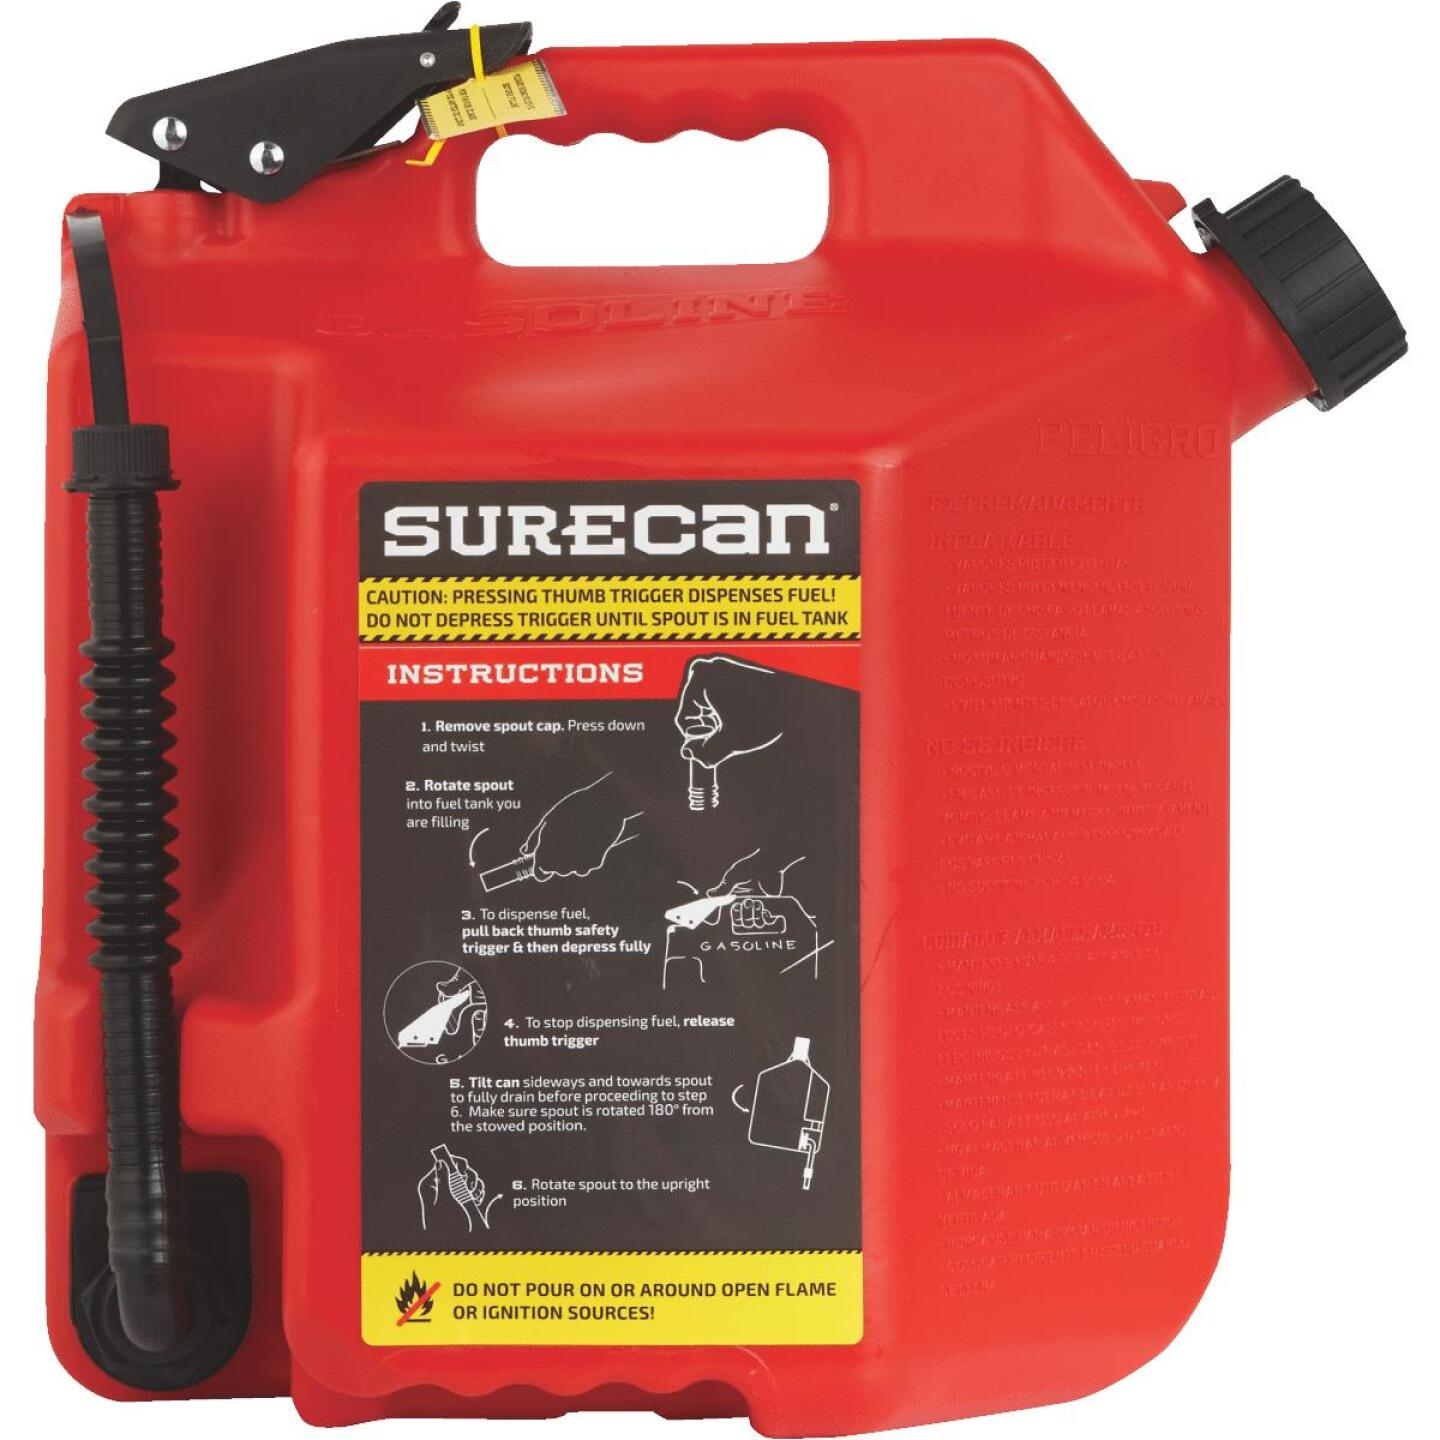 SureCan 5 Gal. Plastic Gasoline Fuel Can, Red Image 3